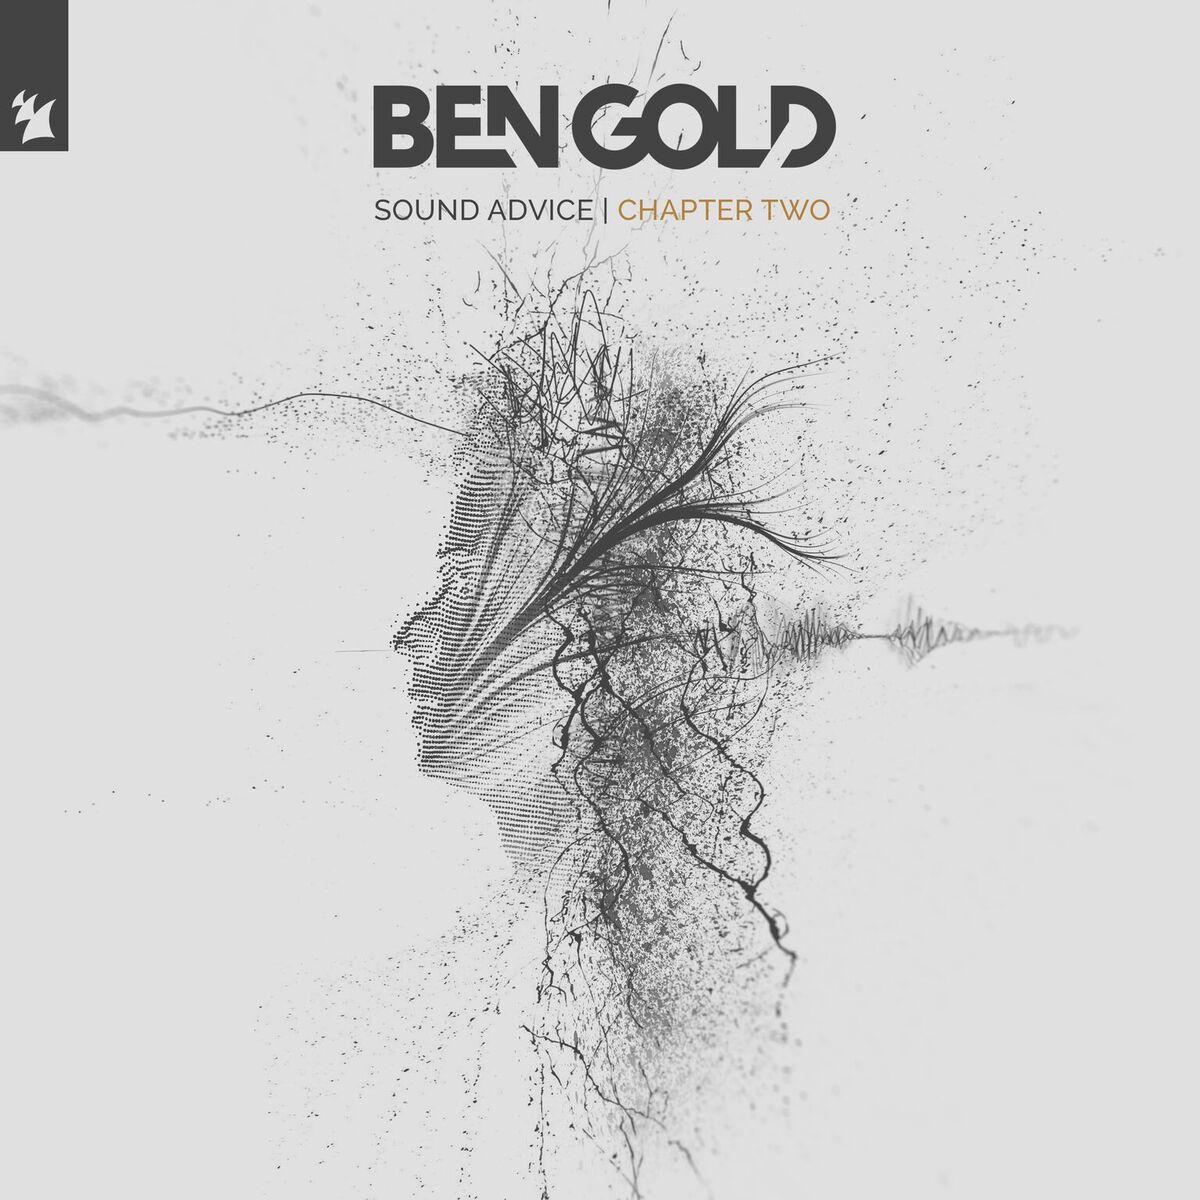 Ben Gold - Sound Advice (Chapter Two) Album Cover